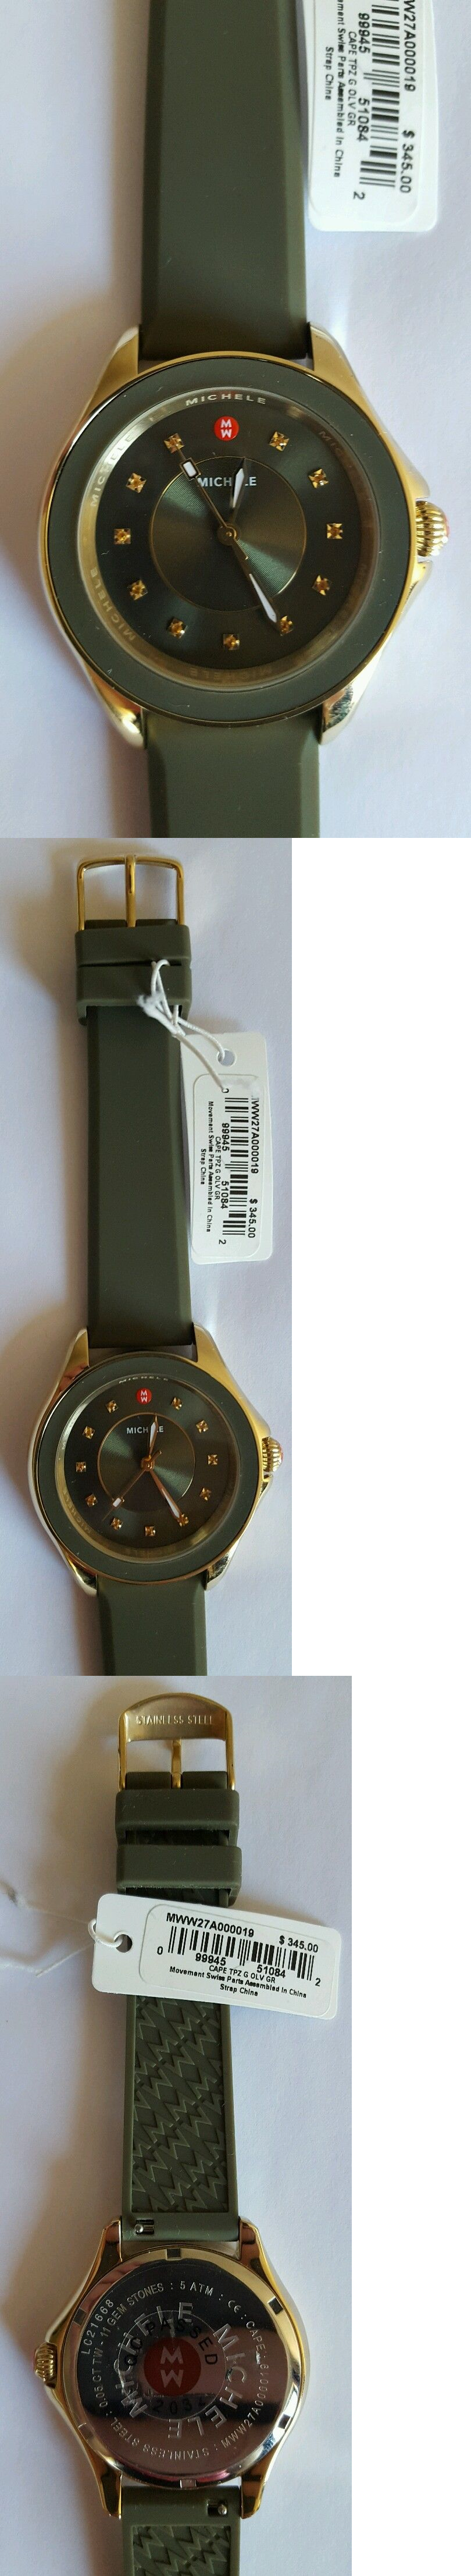 Other Jewelry and Watches 98863: Michele Cape Topaz-Studded Watch, 38Mm Price: $345.00 -> BUY IT NOW ONLY: $205 on eBay!